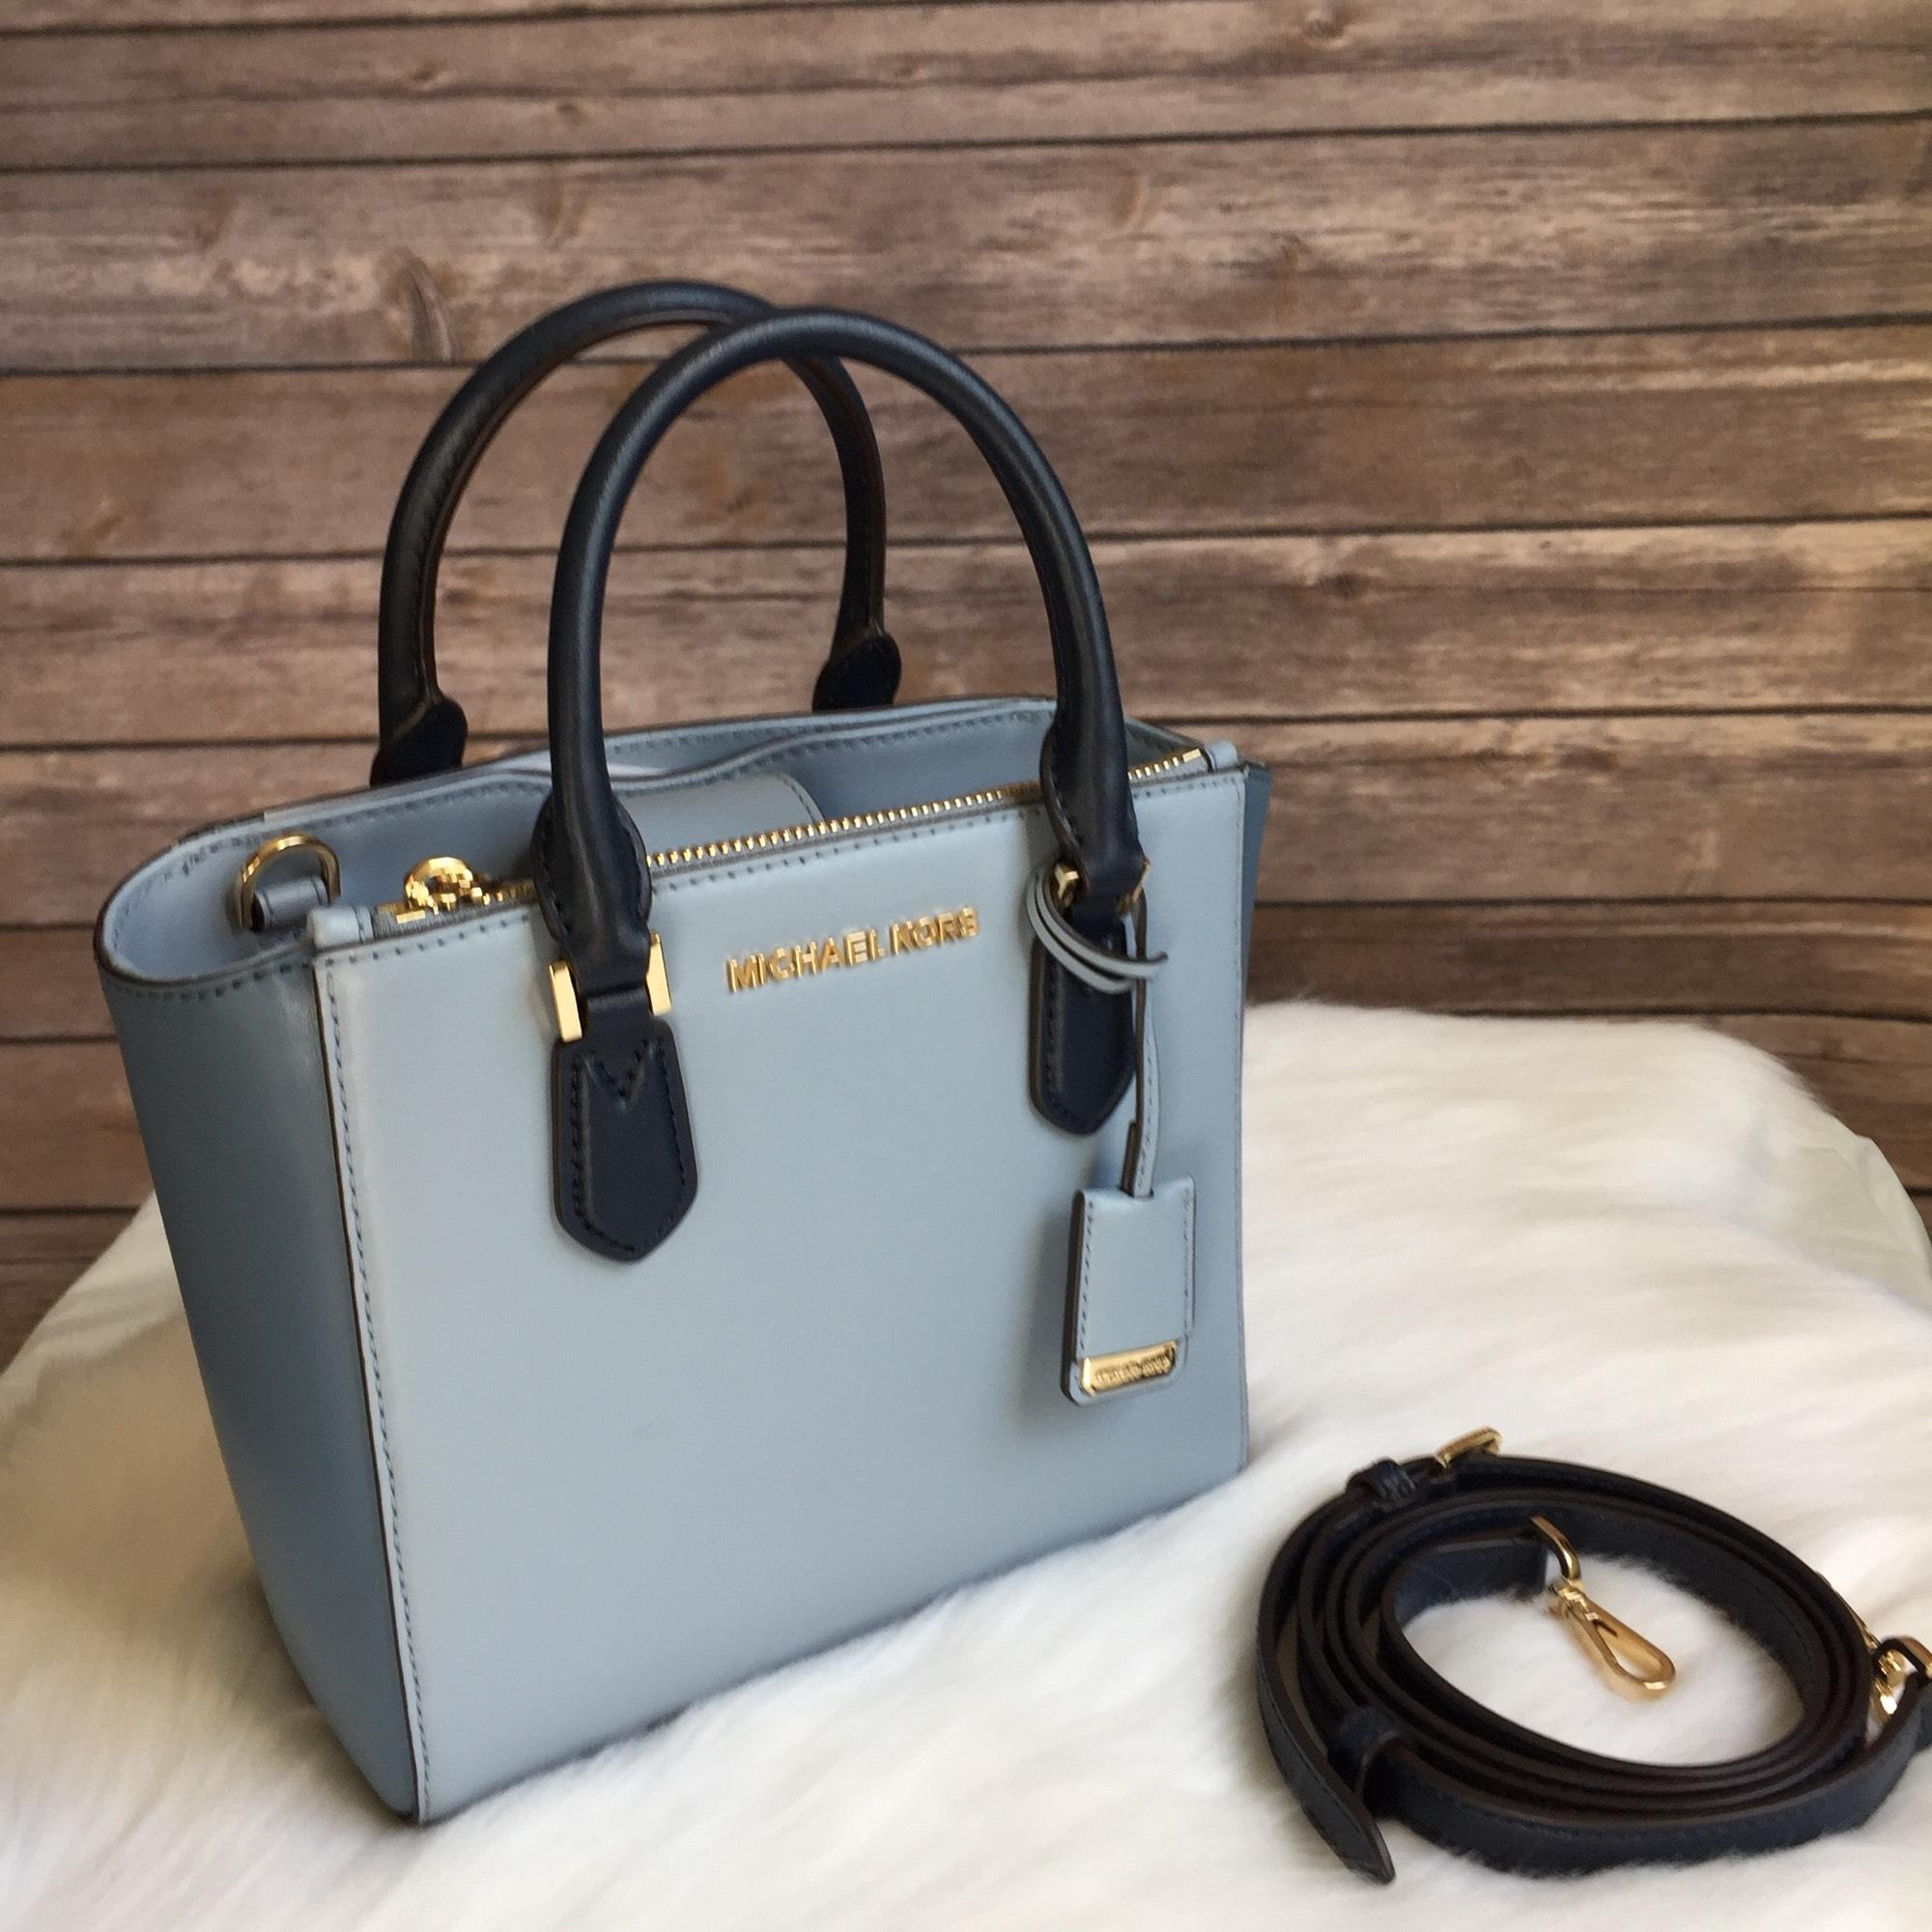 5805a362af41 ... leather crossbody bag gallery michael kors smythe small dome satchel  cb4d9 8c3dc; low price michael kors satchel in blue 0340f 76d73